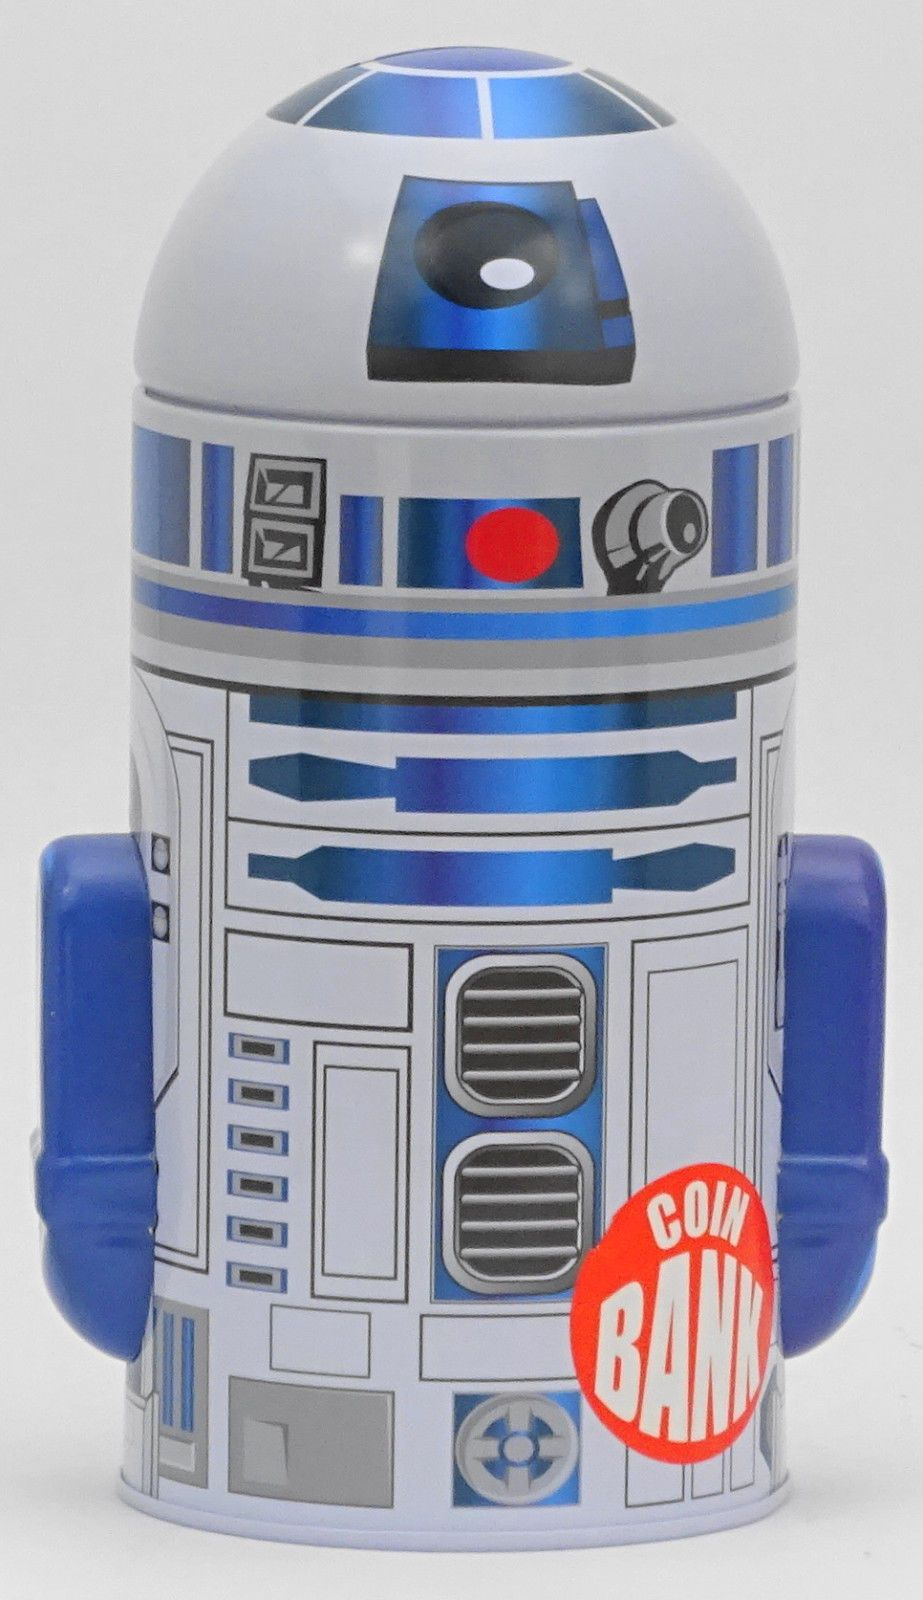 Star Wars R2 D2 Metal Tin Coin Bank Star Wars Awesome Coin Bank Toy Bank